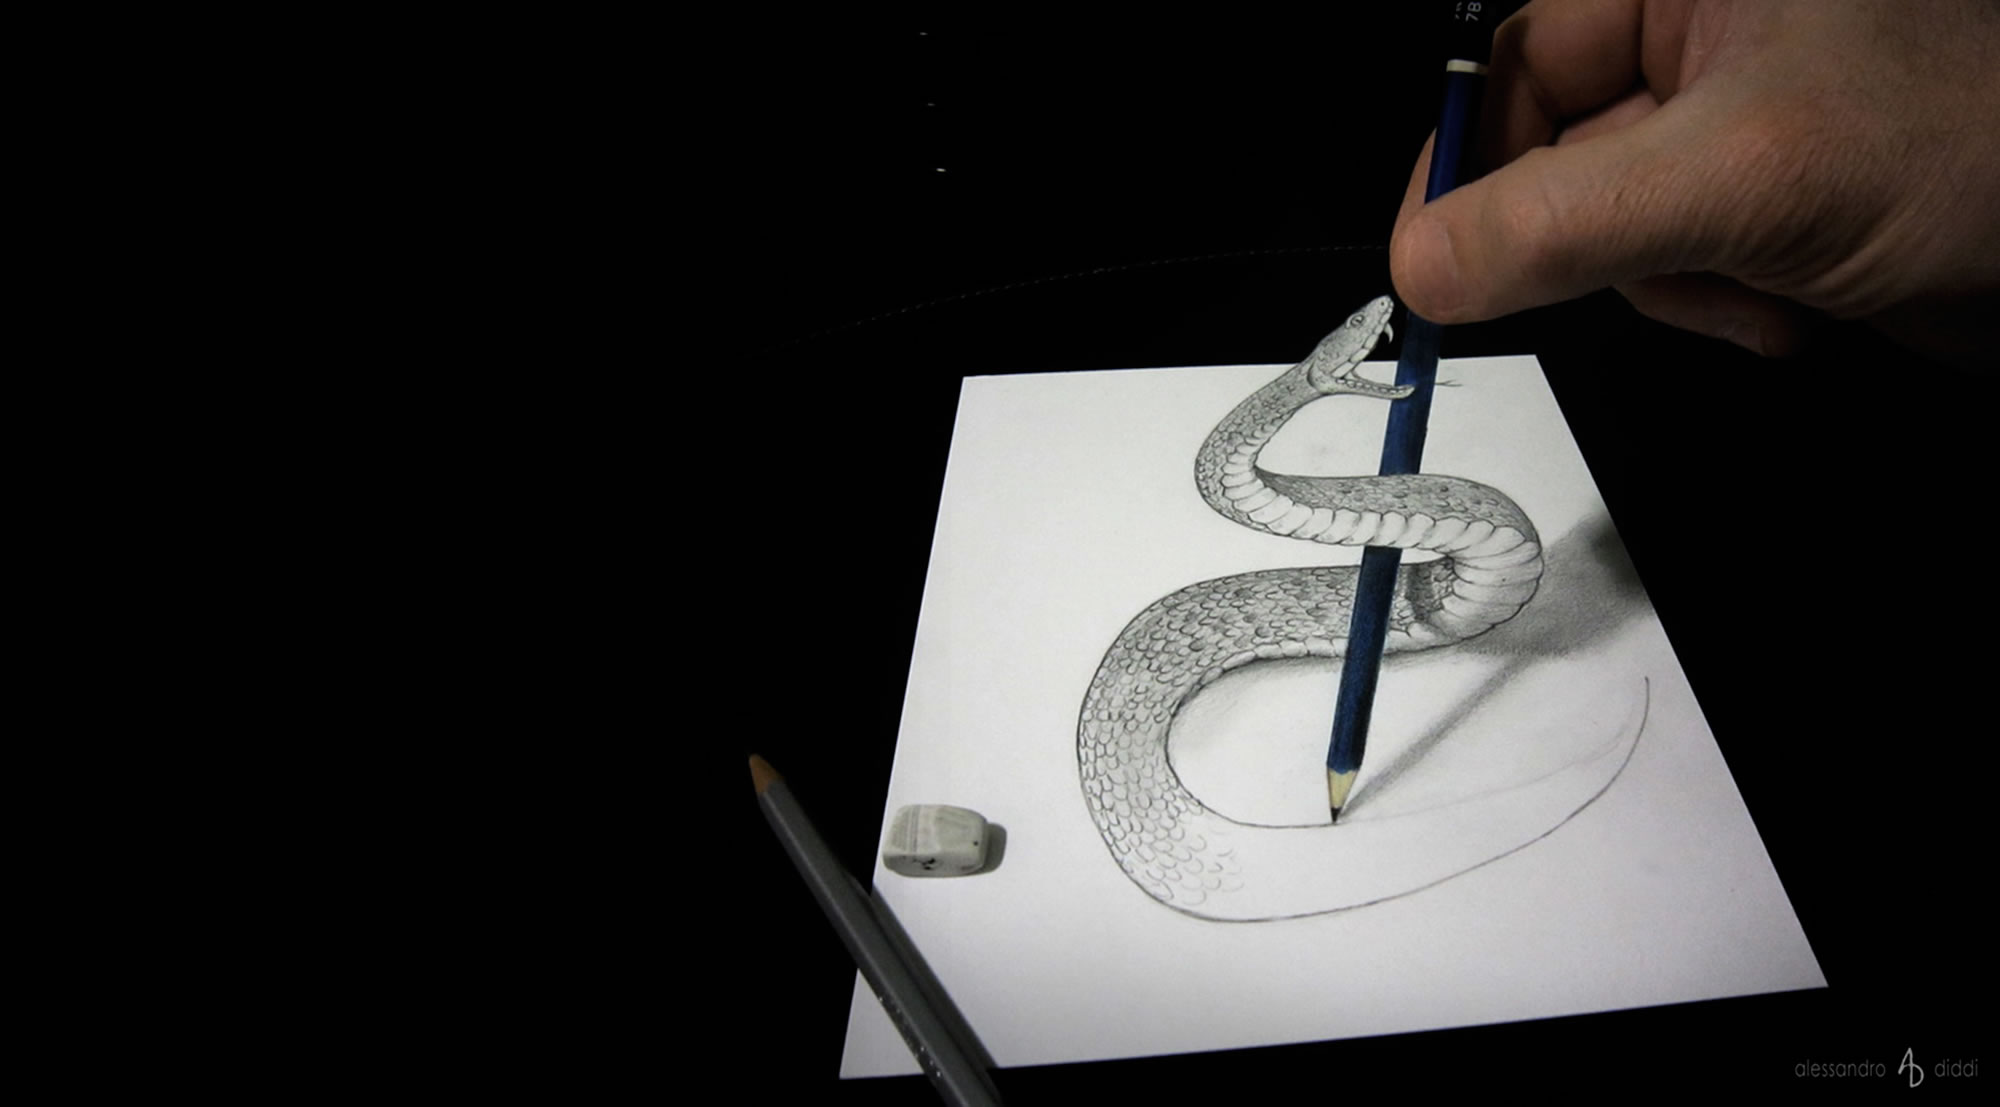 New! 3D Illusion Drawings by Alessandro Diddi | Scene360